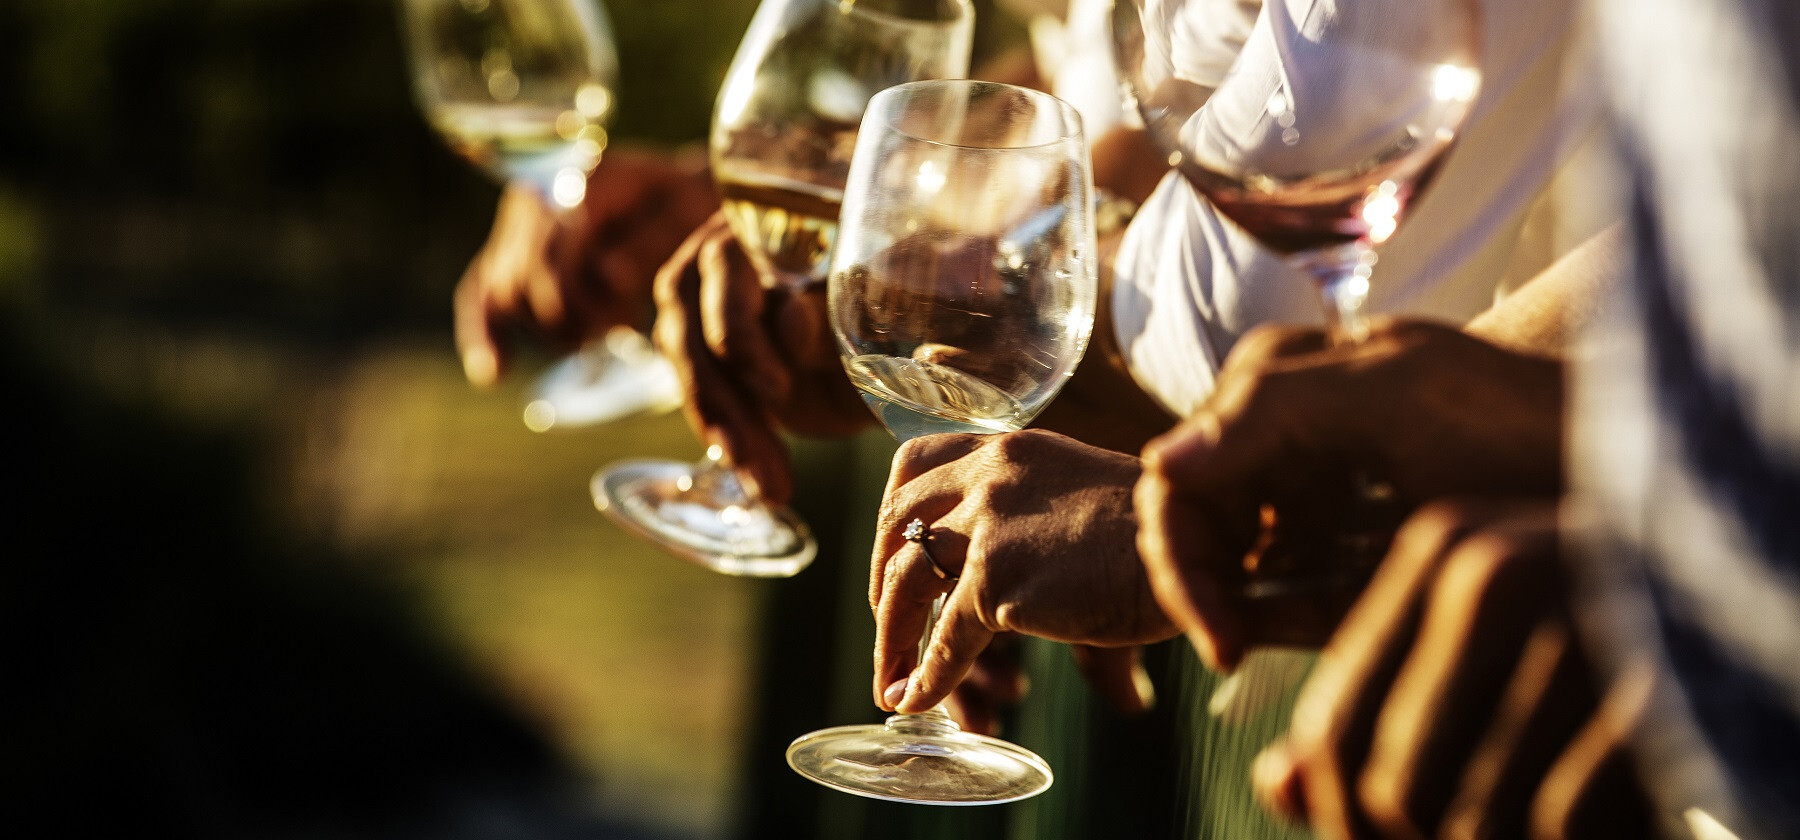 Riverside Wine Festival Book your place for just £39.50...